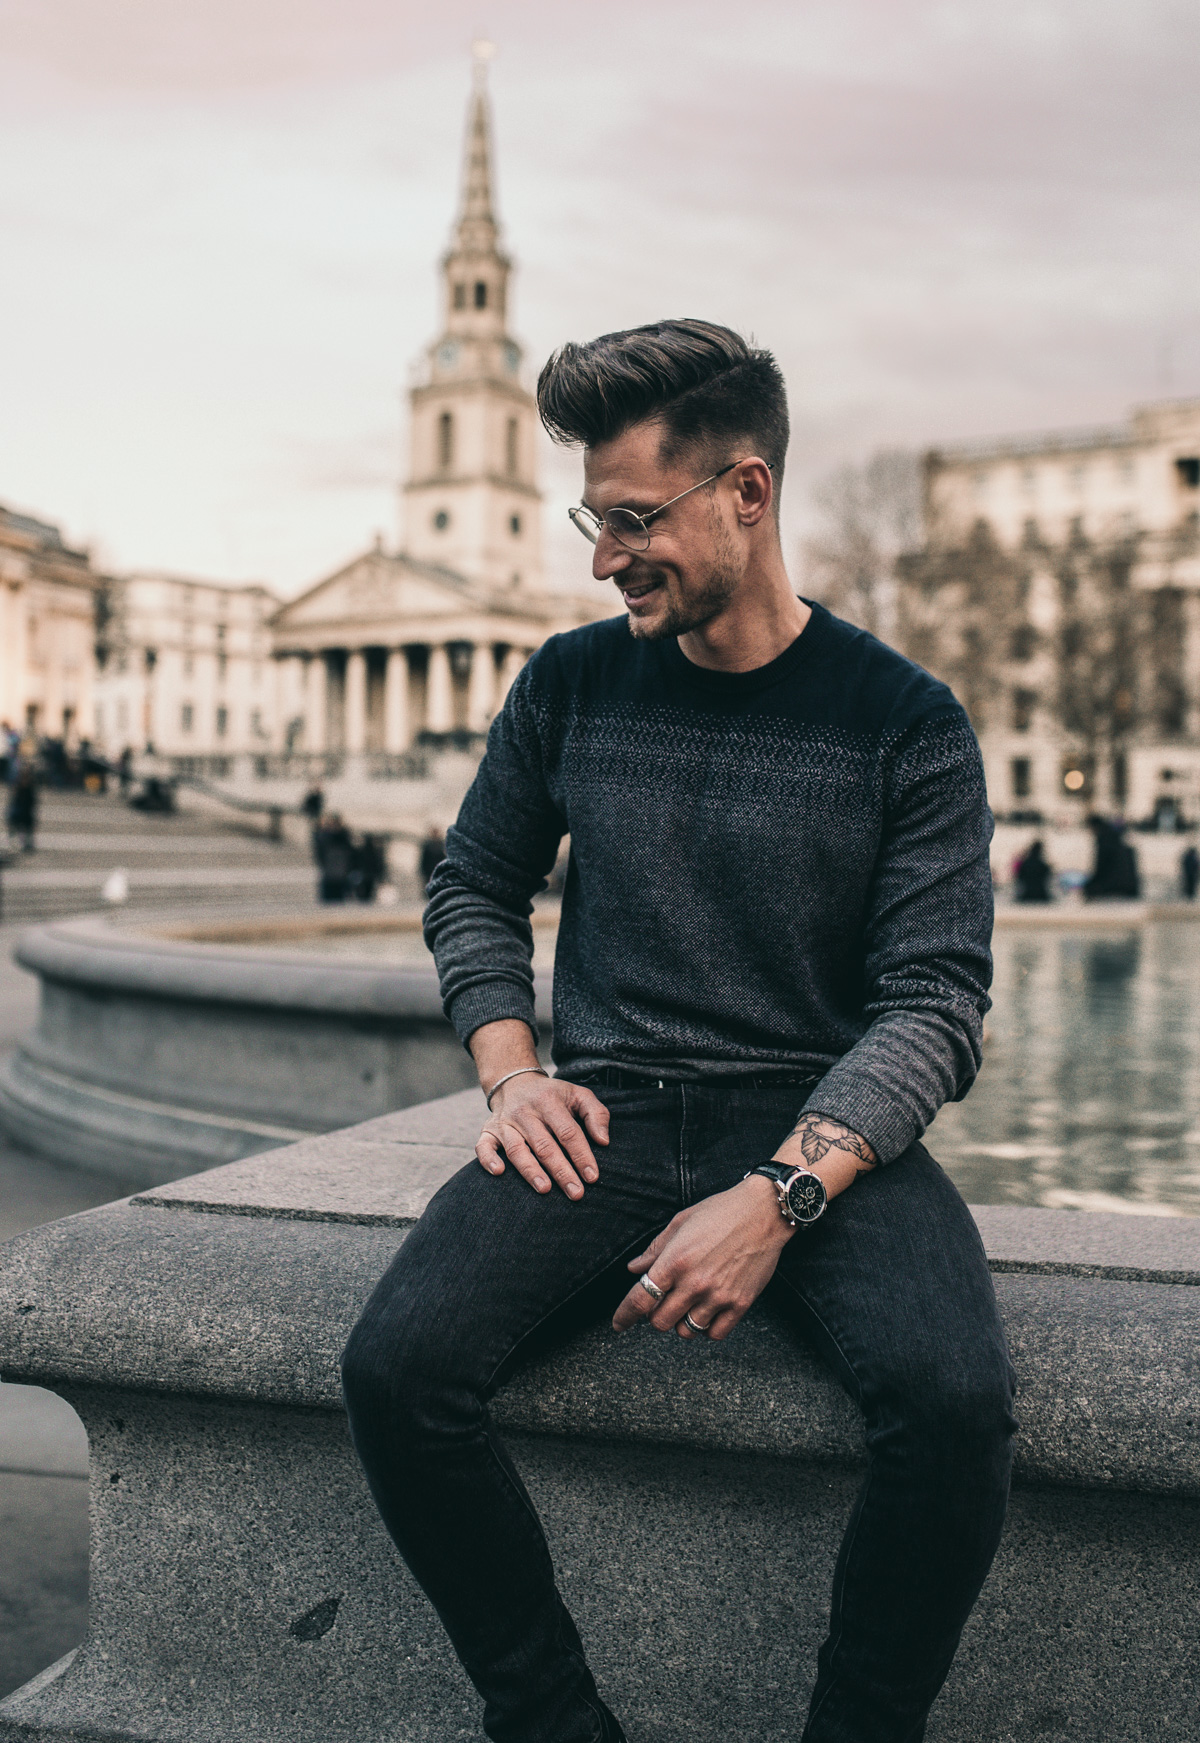 Tommeezjerry-Lifestyleblog-Fashionblog-Maennermodeblog-Maennerblog-Modeblog-London-Brax-FeelGood-Herbstlook-Winterlook-Sweater-Turtleneck-Autumnlook